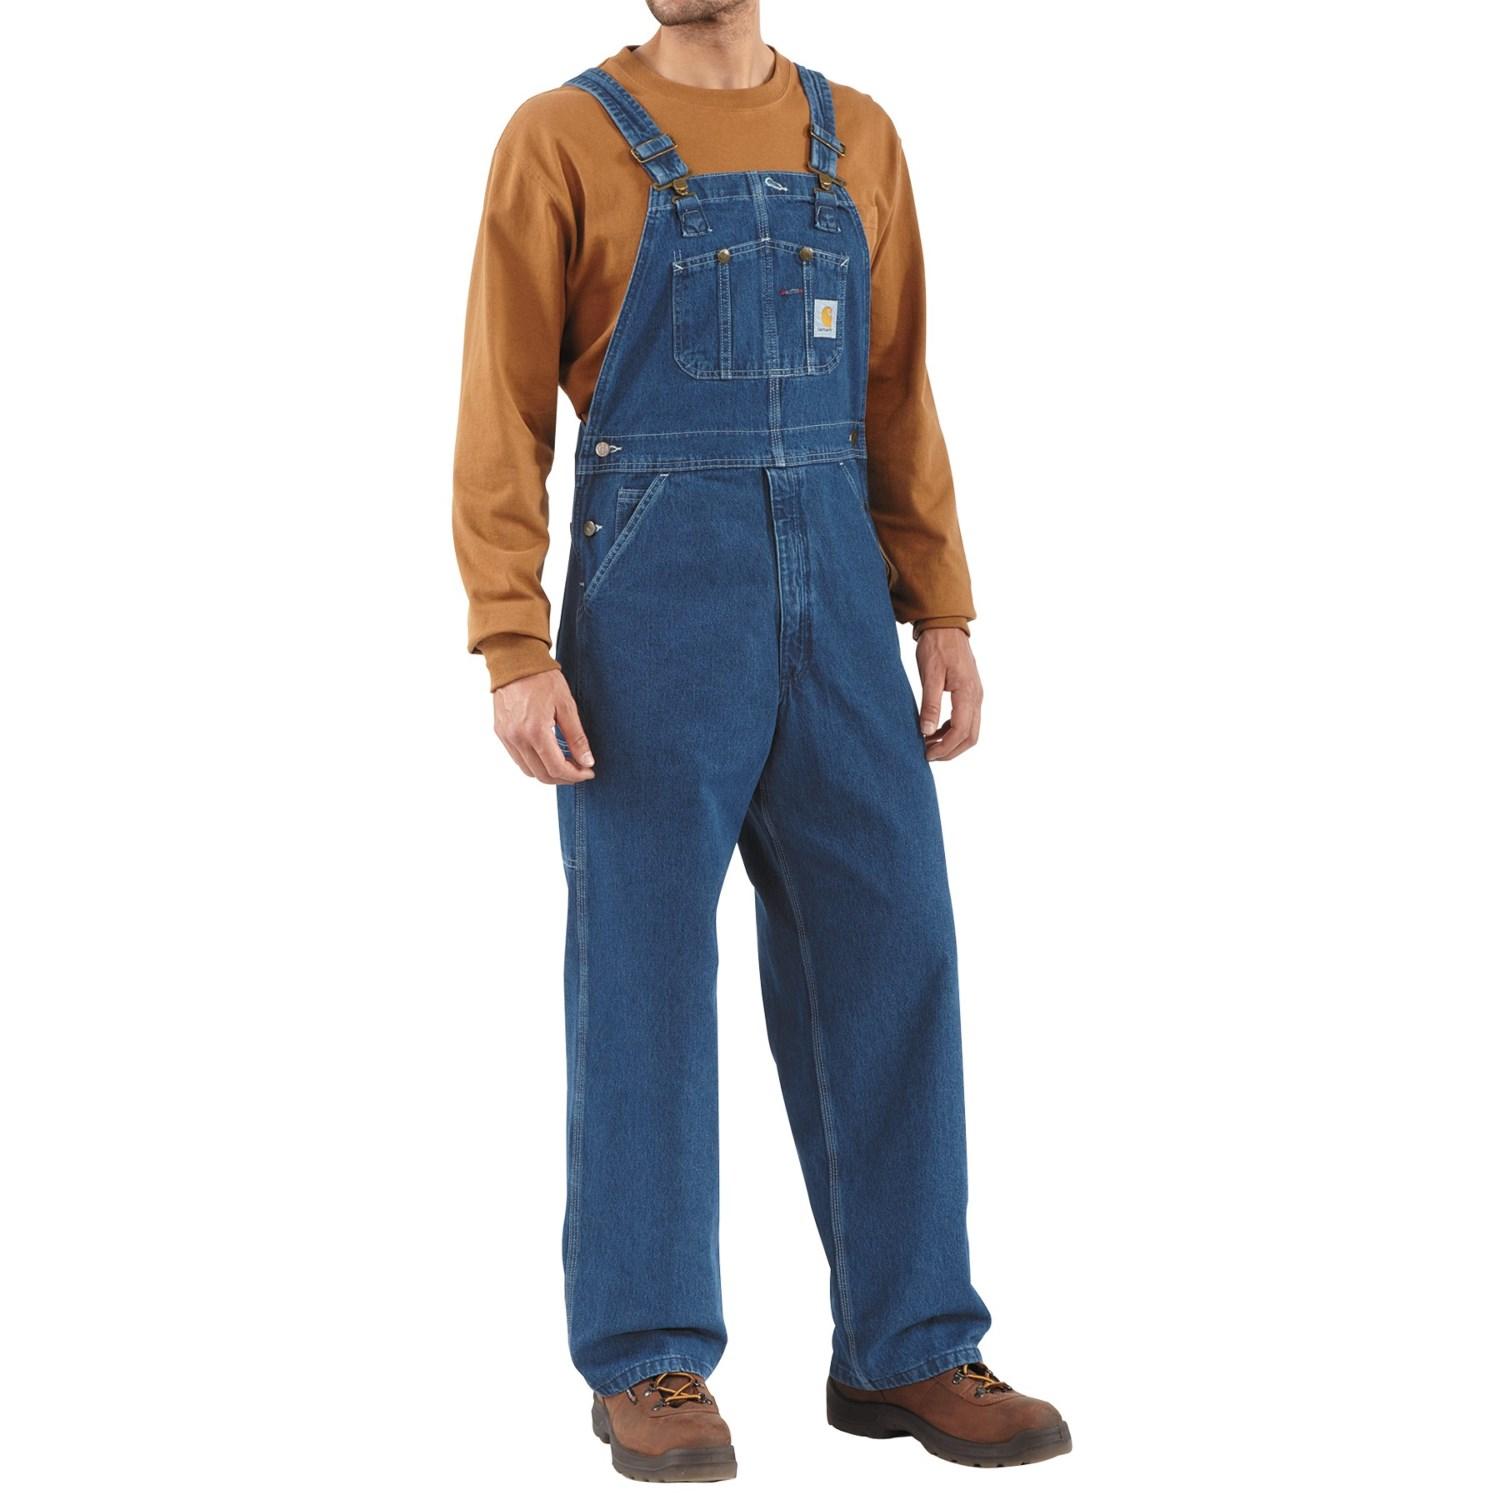 Men S Overall Working Clothes